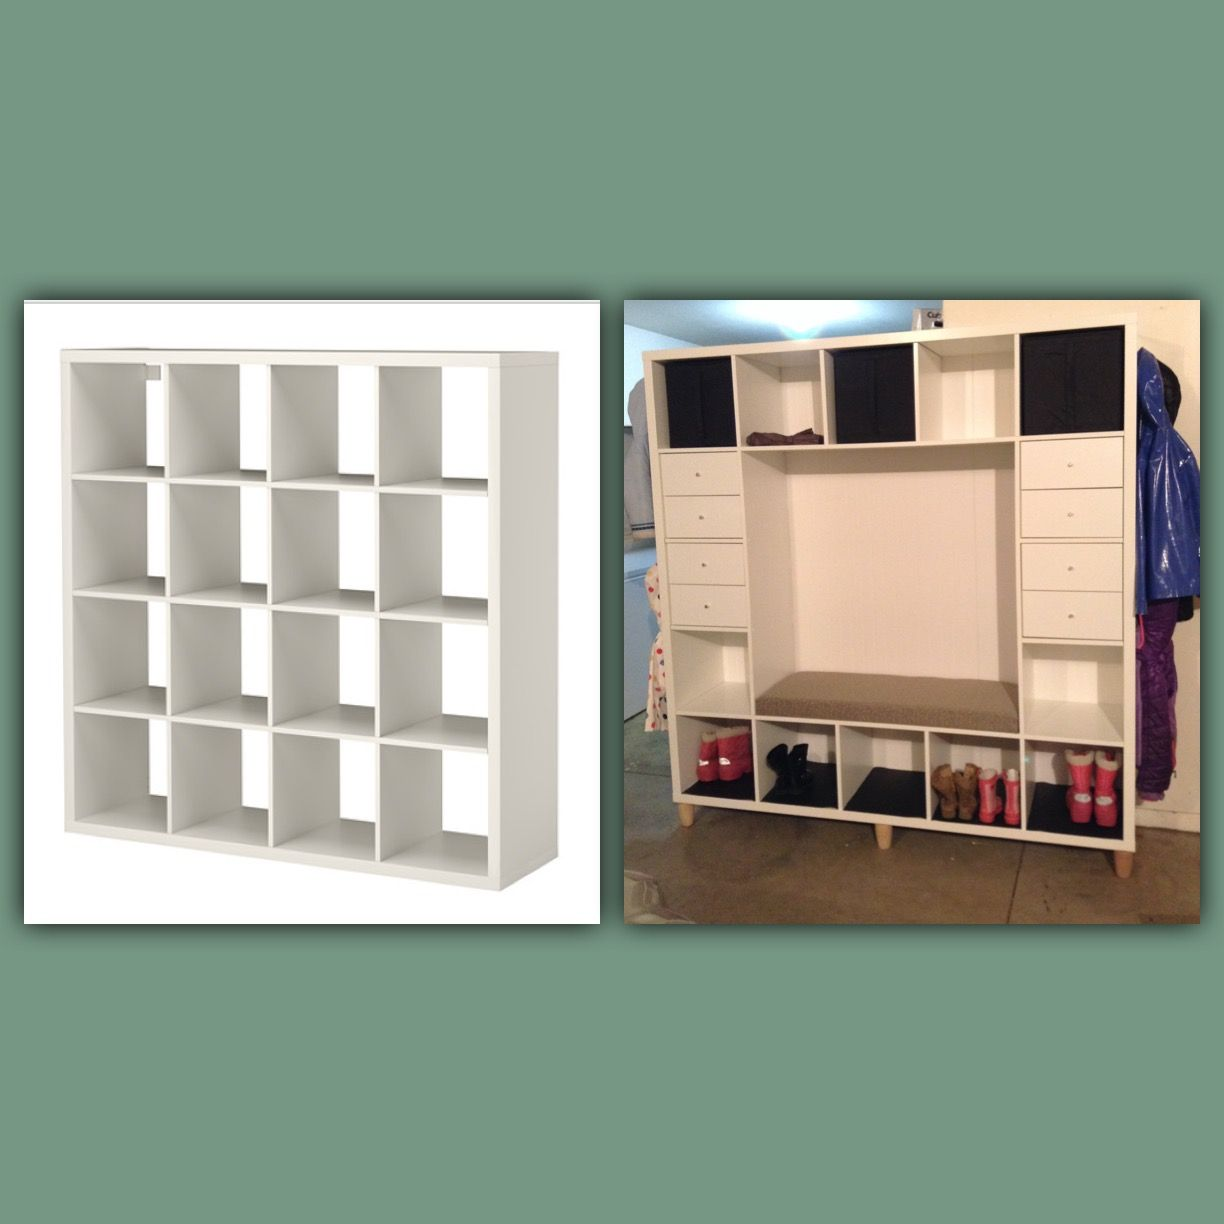 ikea hack kallax shelves to mudroom bench crafty things. Black Bedroom Furniture Sets. Home Design Ideas